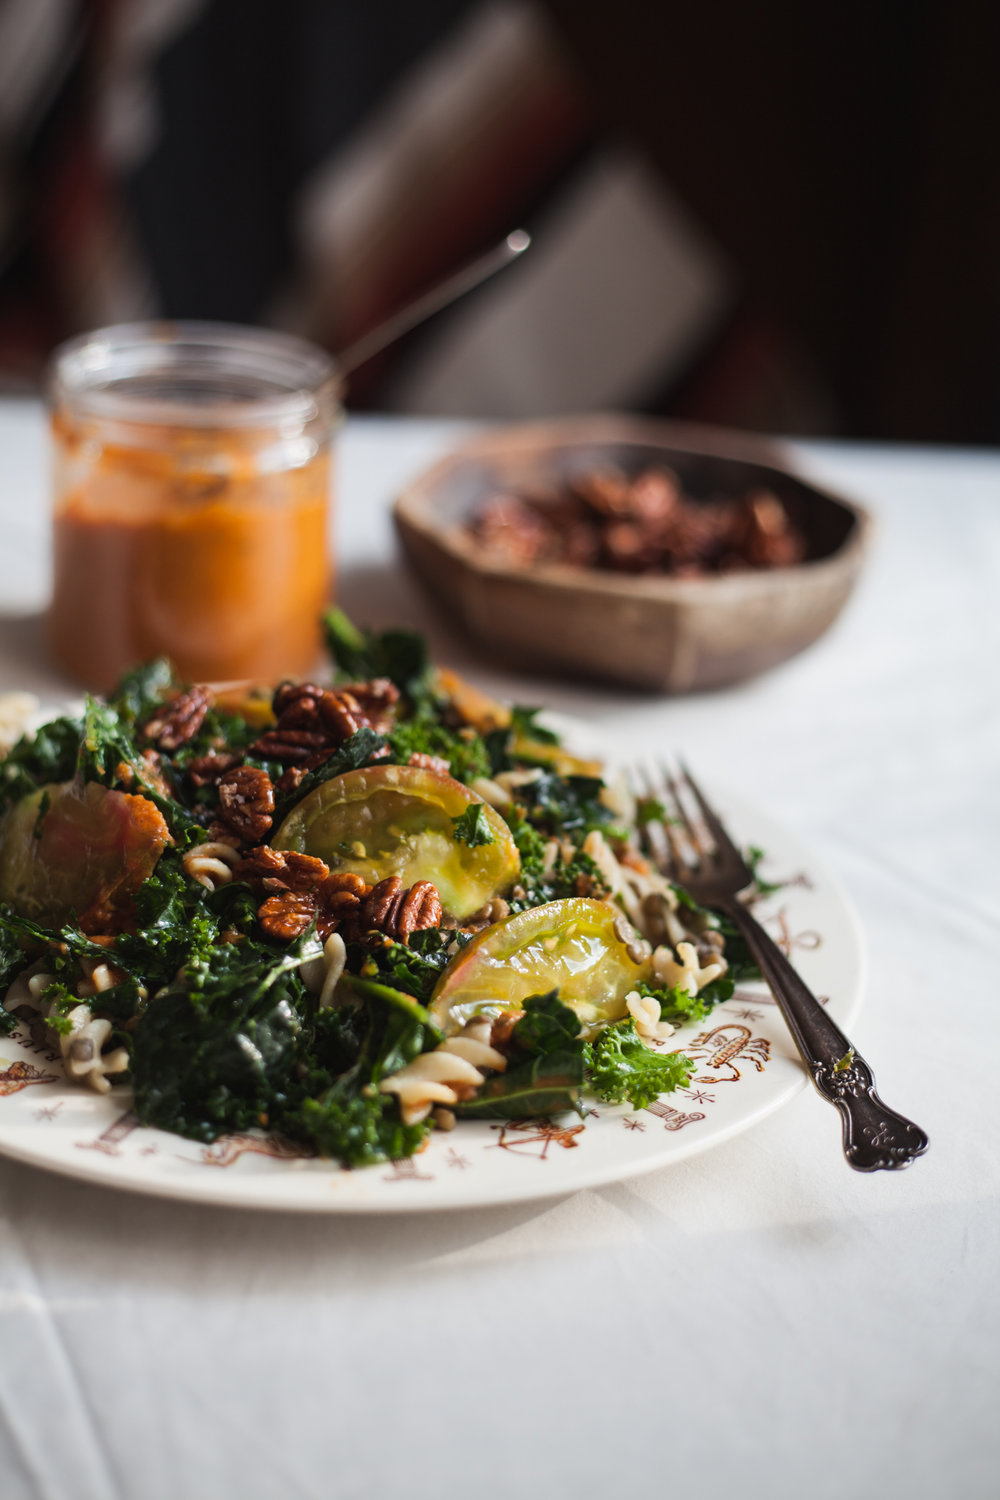 life changing kale lentil pasta salad w/ maple pecans | recipe via will frolic for food